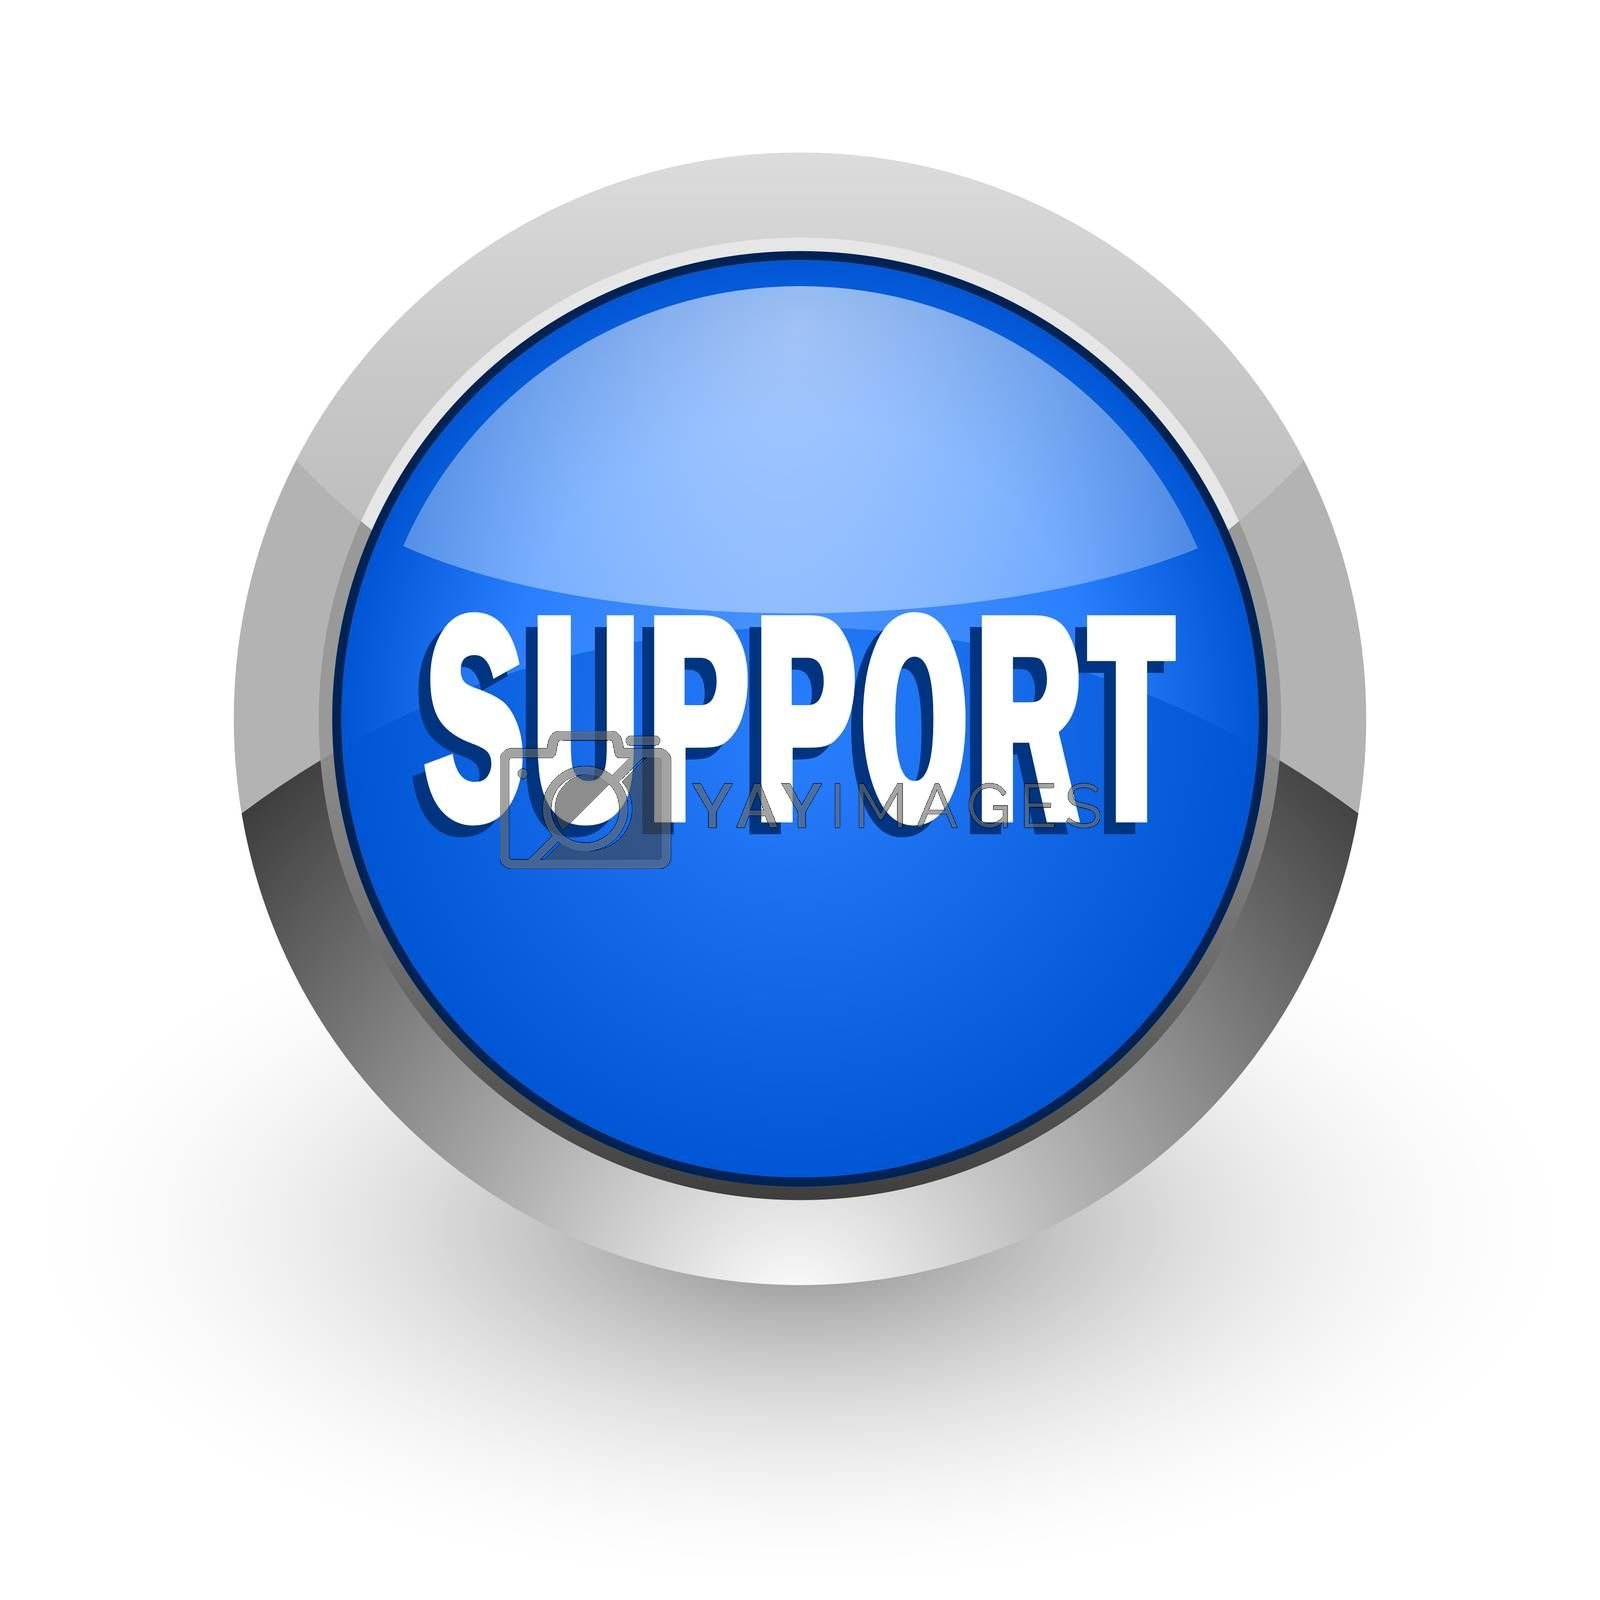 Royalty free image of support blue glossy web icon by alexwhite